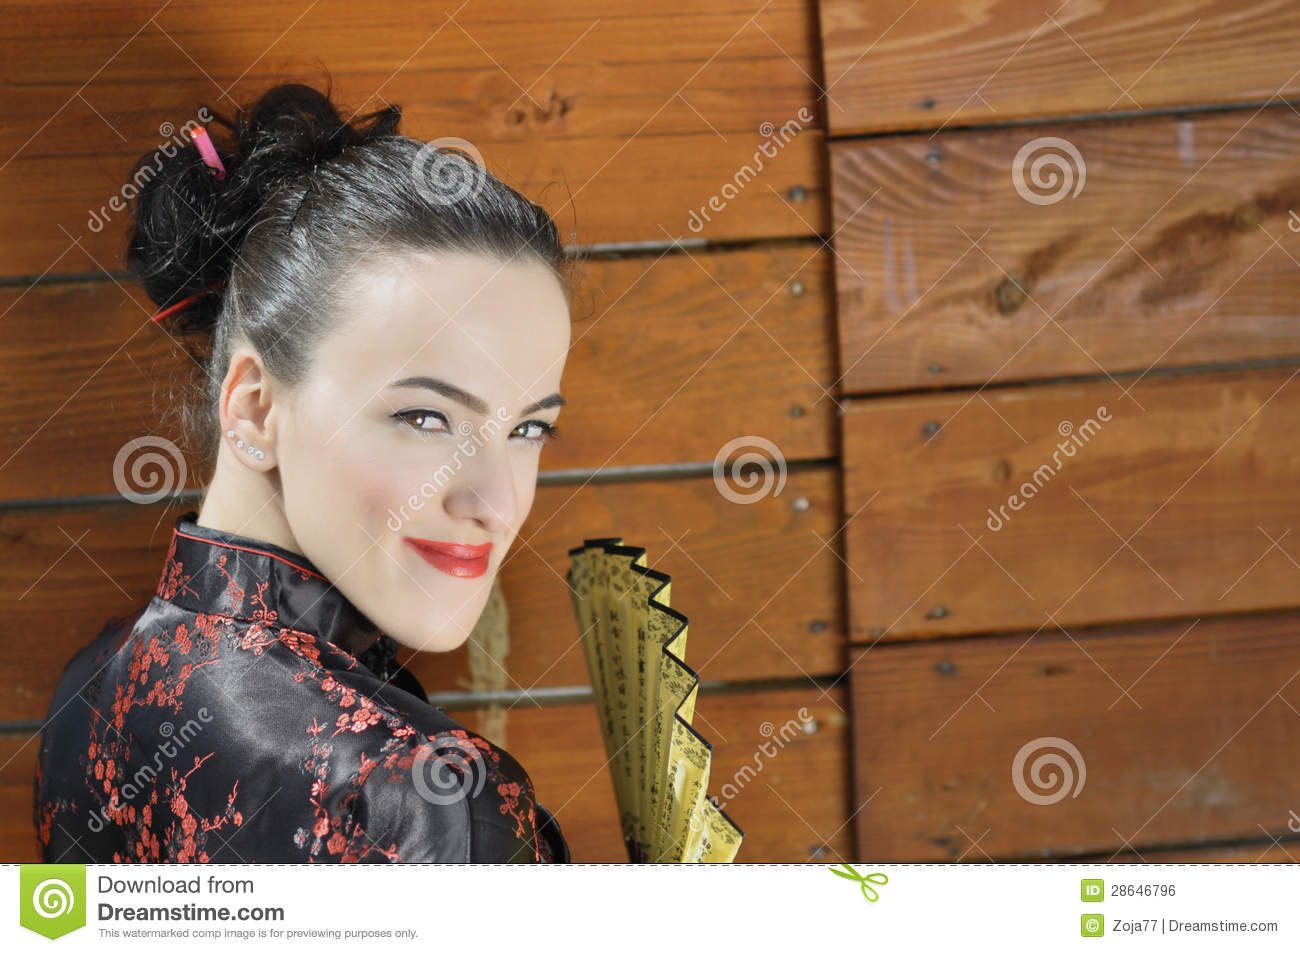 Free geisha girl pictures